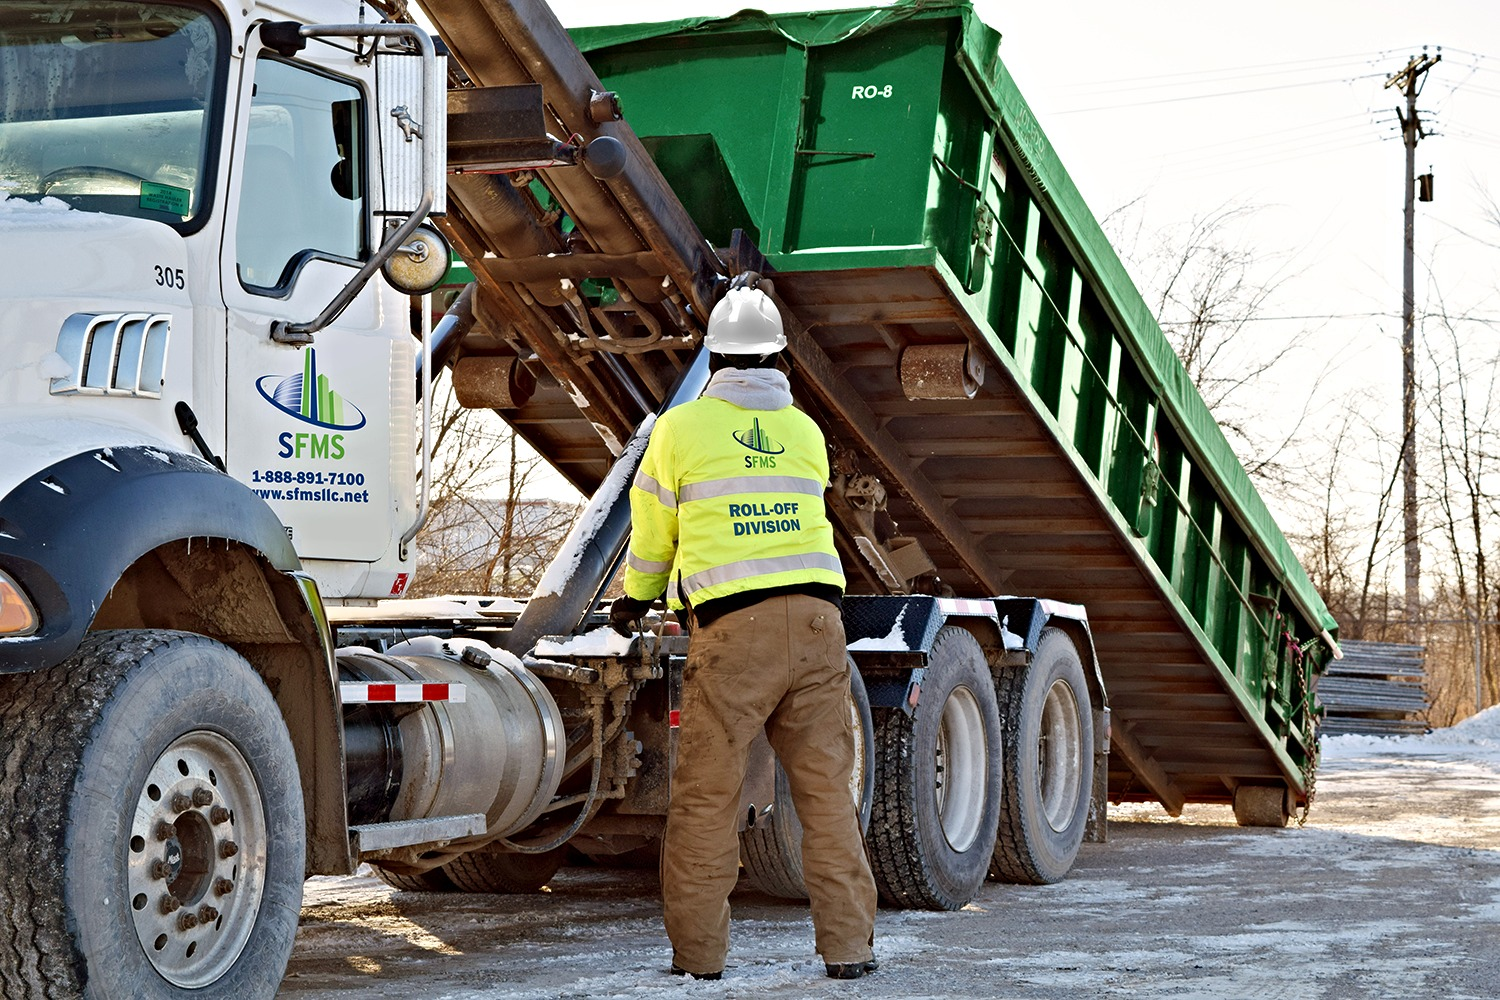 Roll-Off Dumpster Rental Services